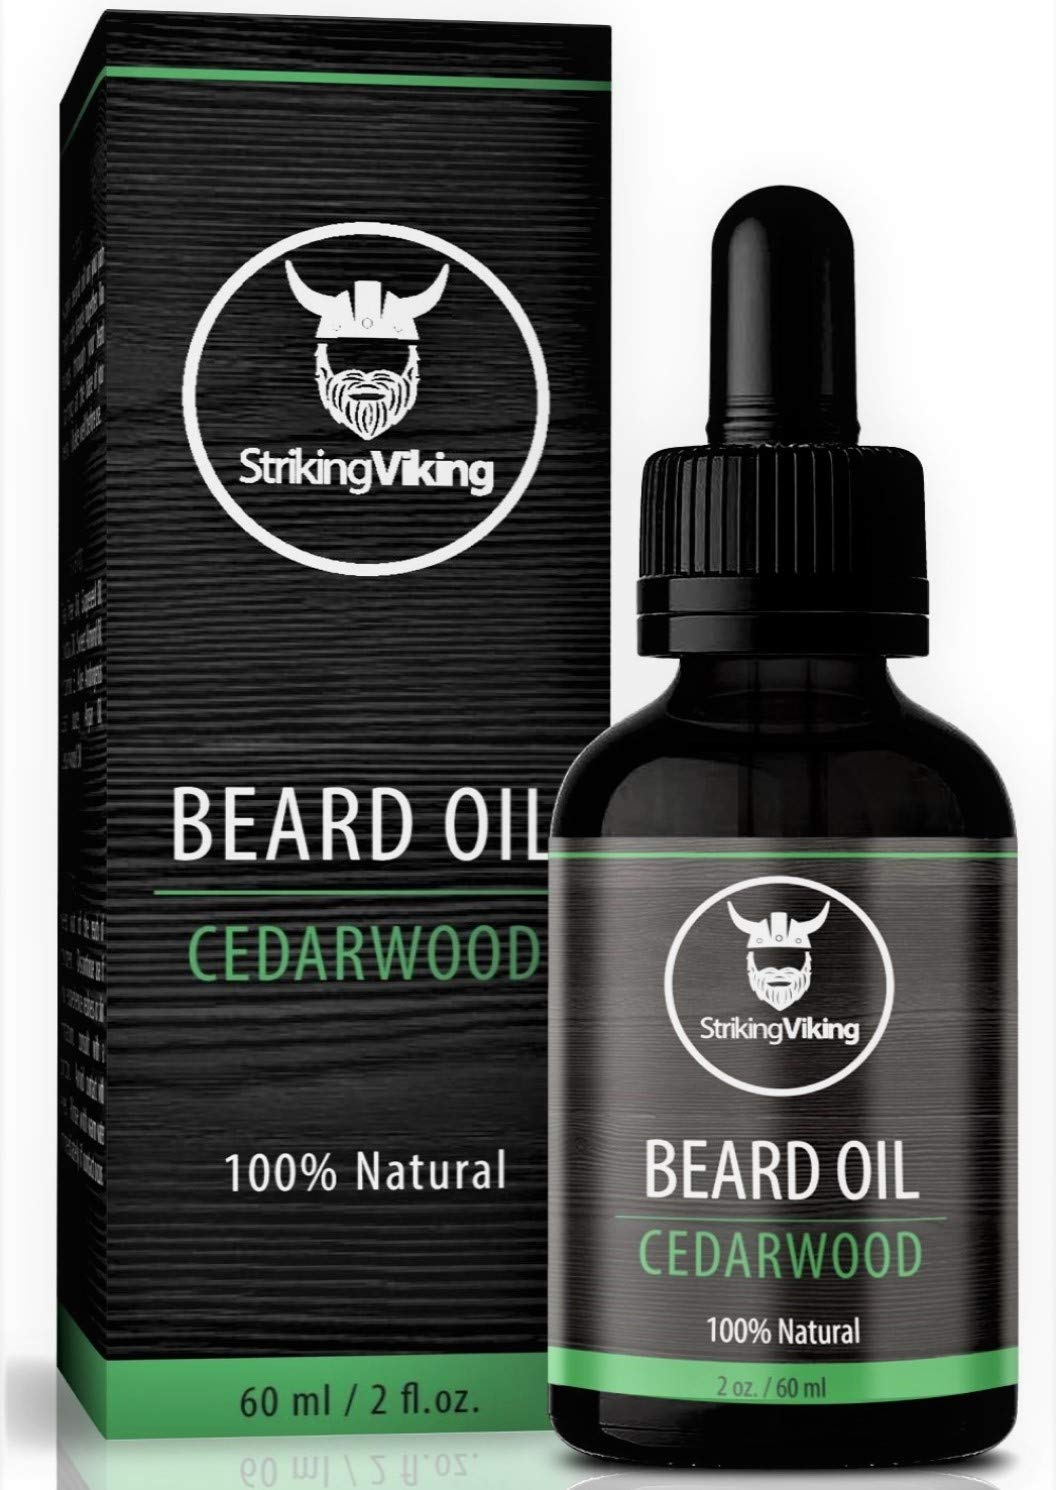 Striking Viking Cedarwood beard oil